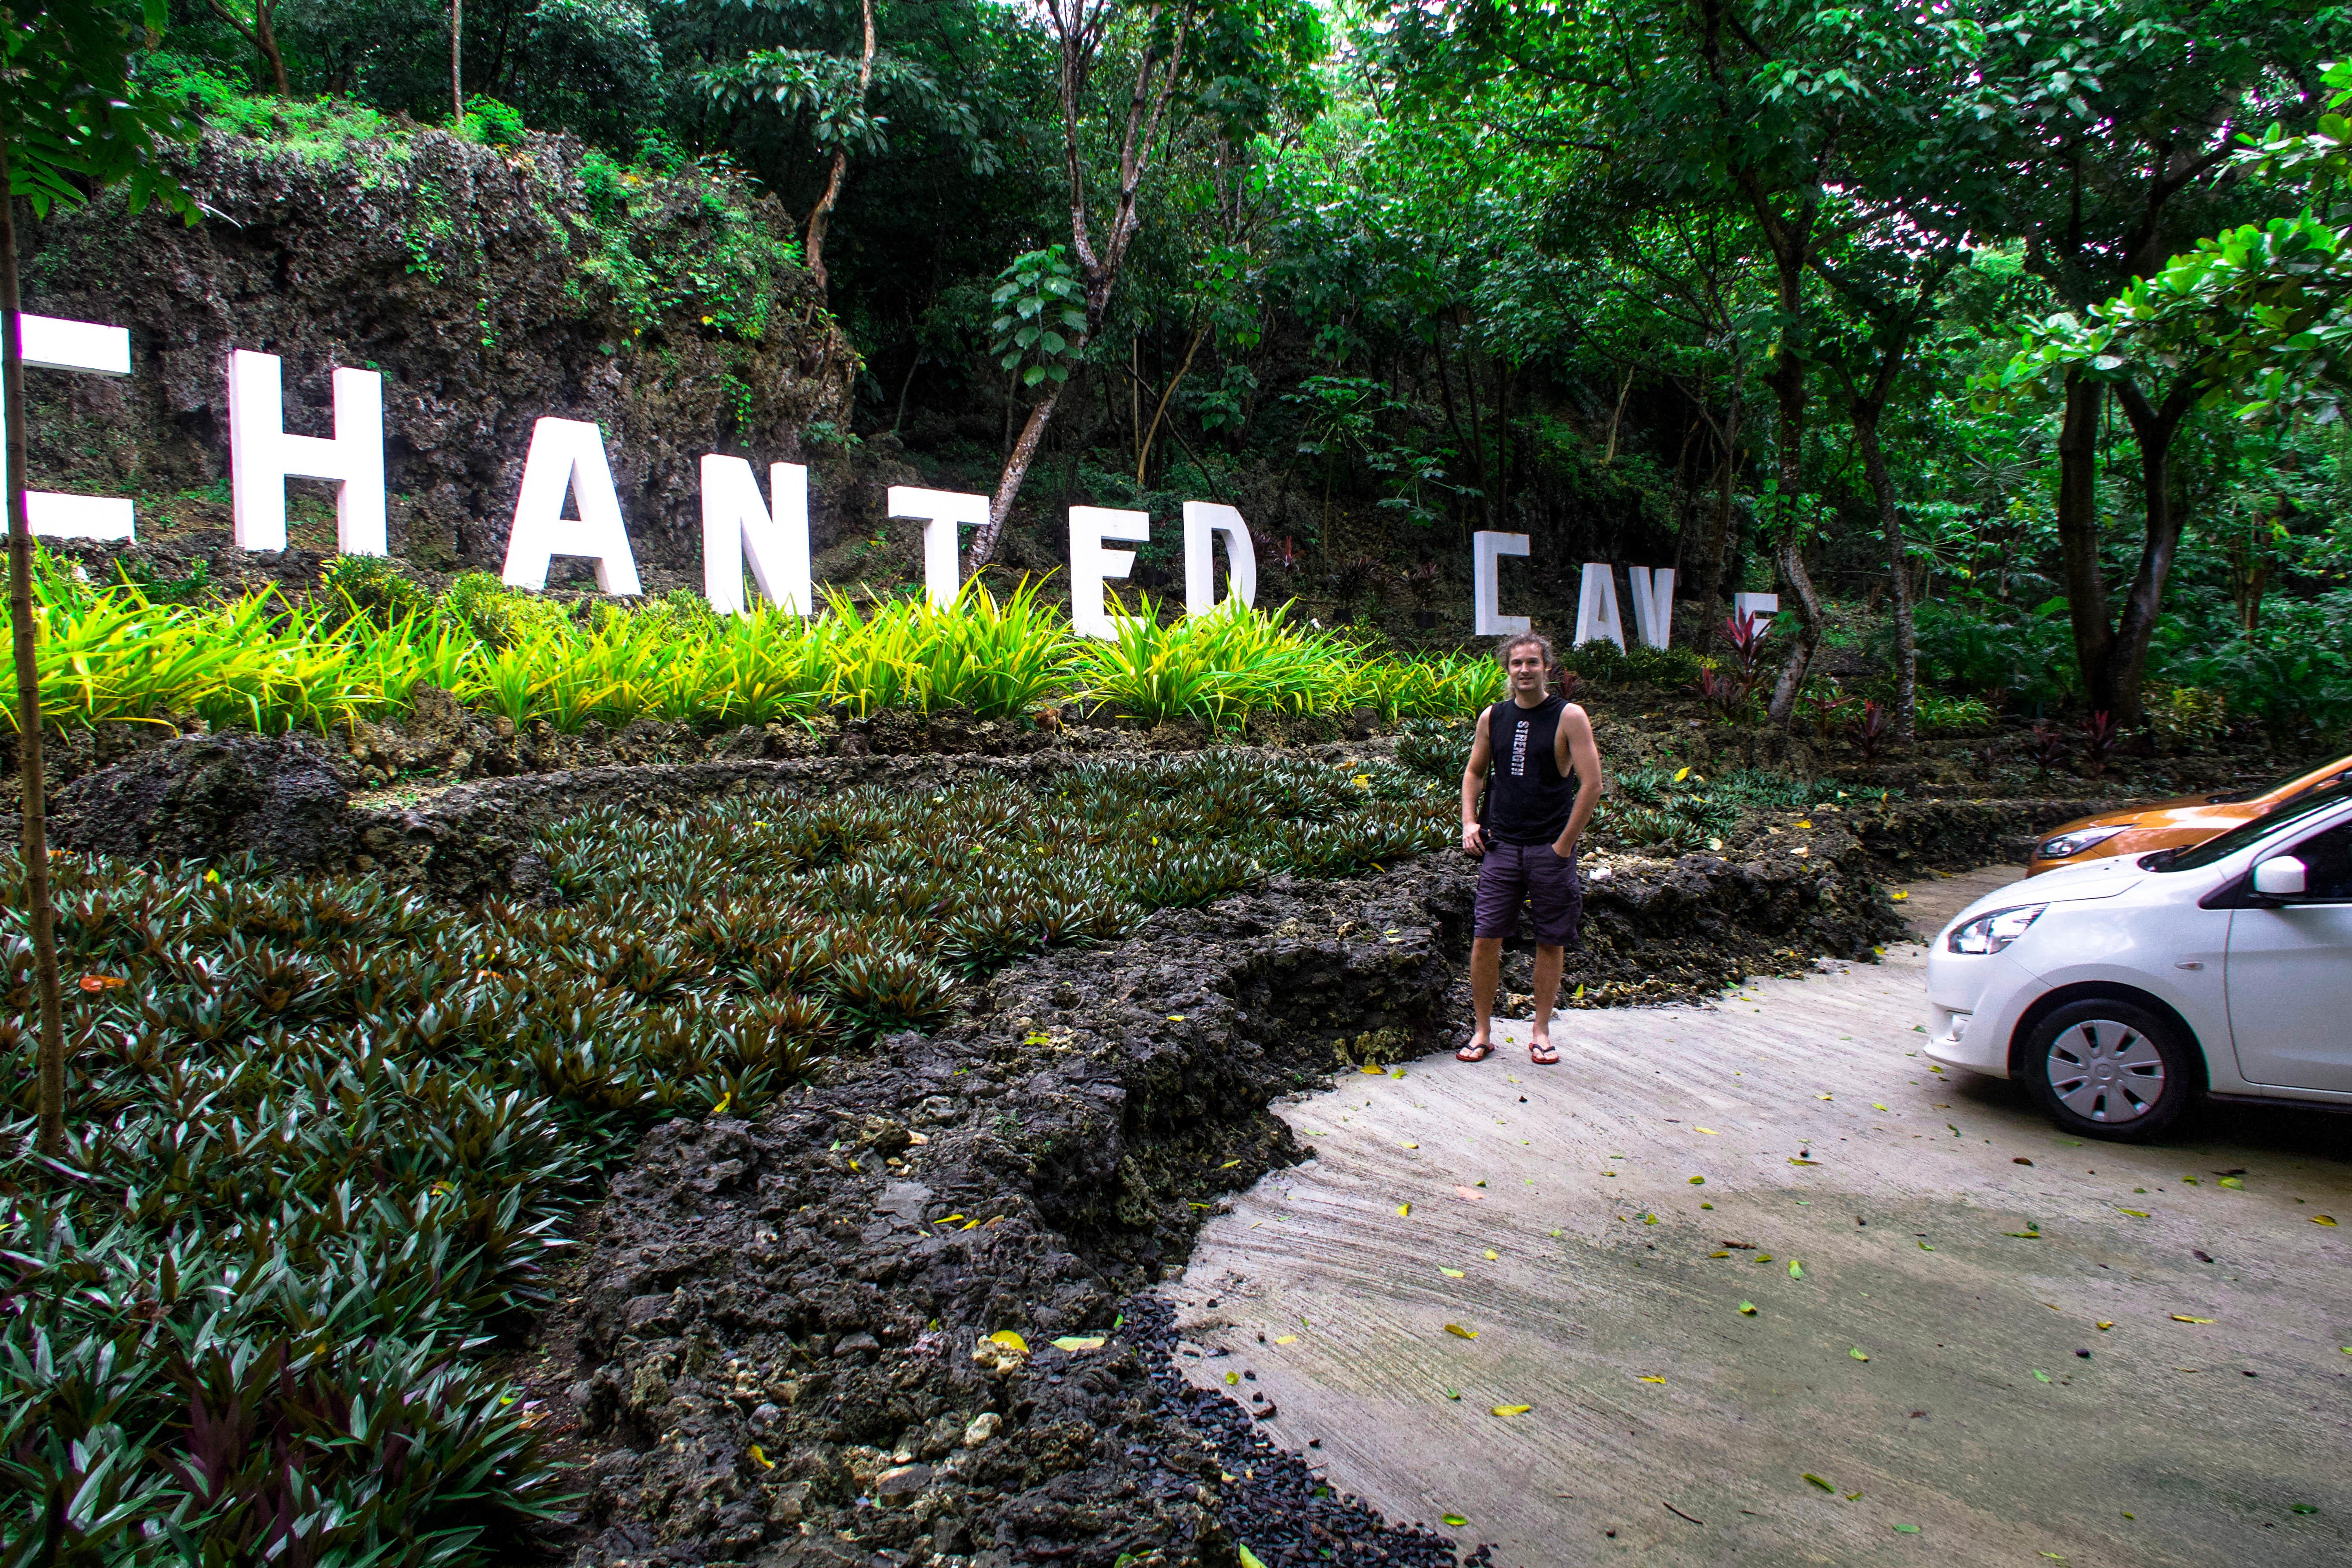 lenny through paradise with big letters of the white sign of enchanted cave bolinao pangasinan philippines